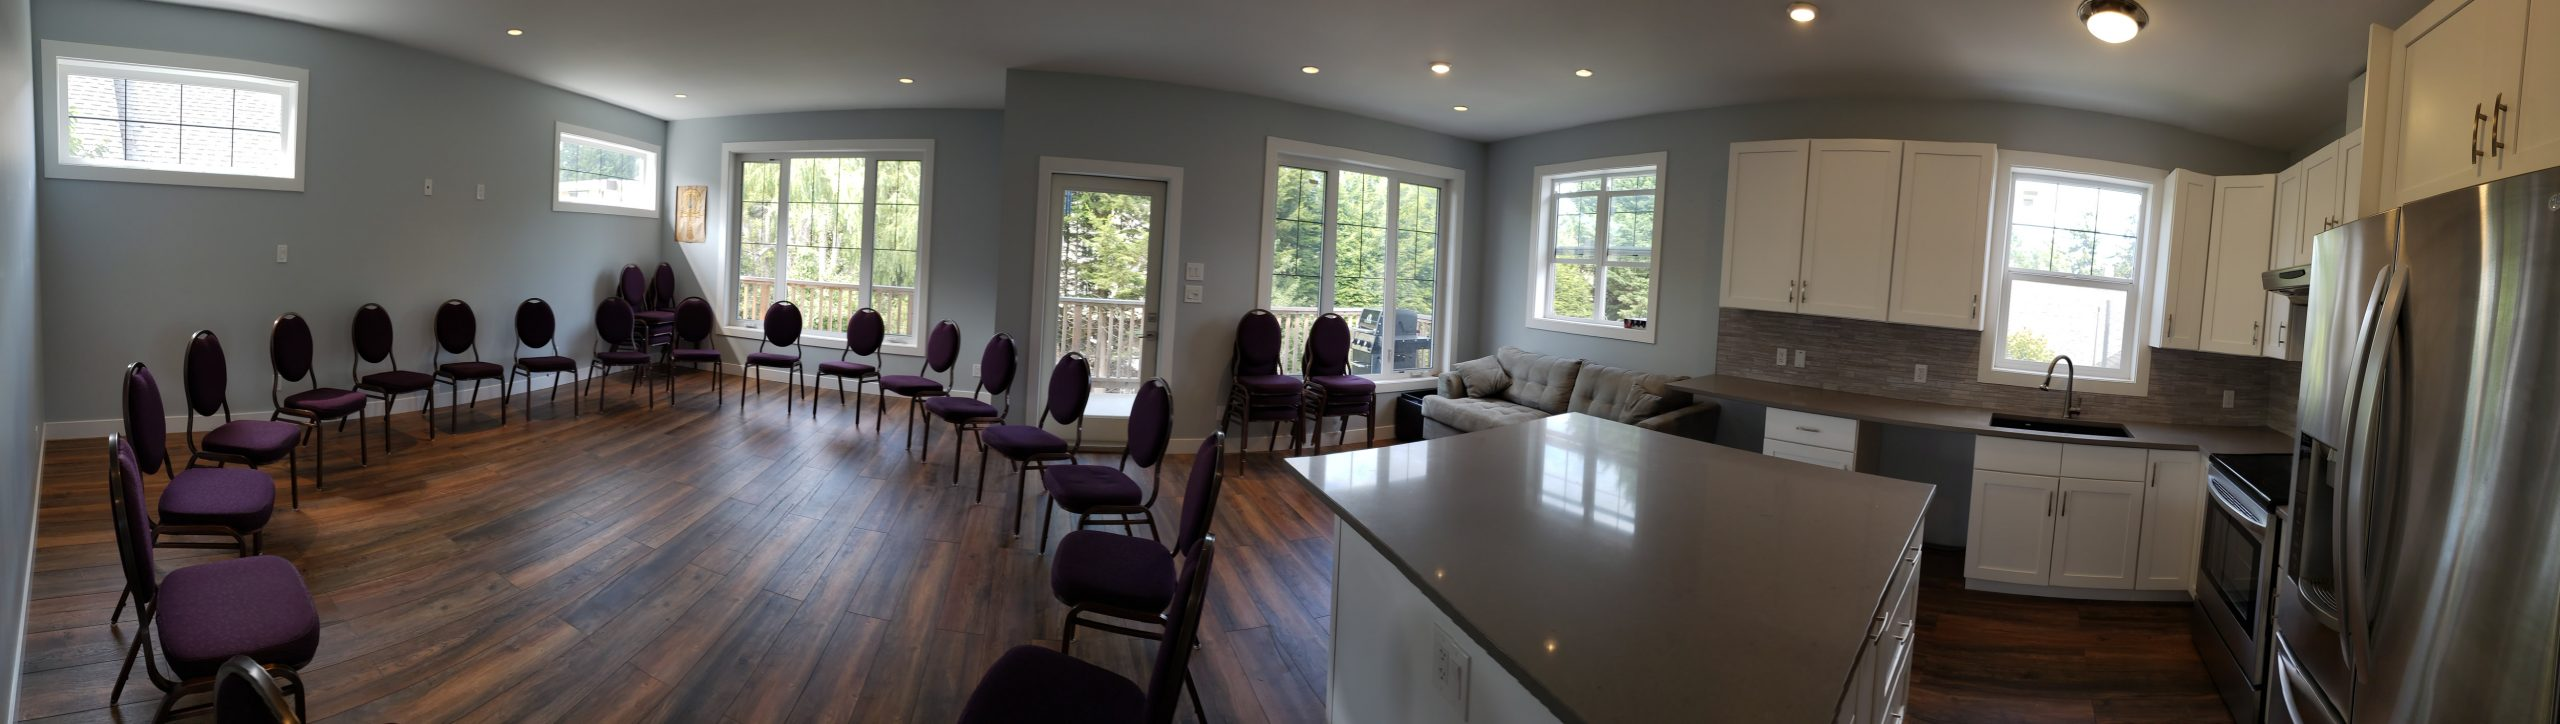 Meeting, Classes, and Workshop Space for Rent in Victoria, British Columbia